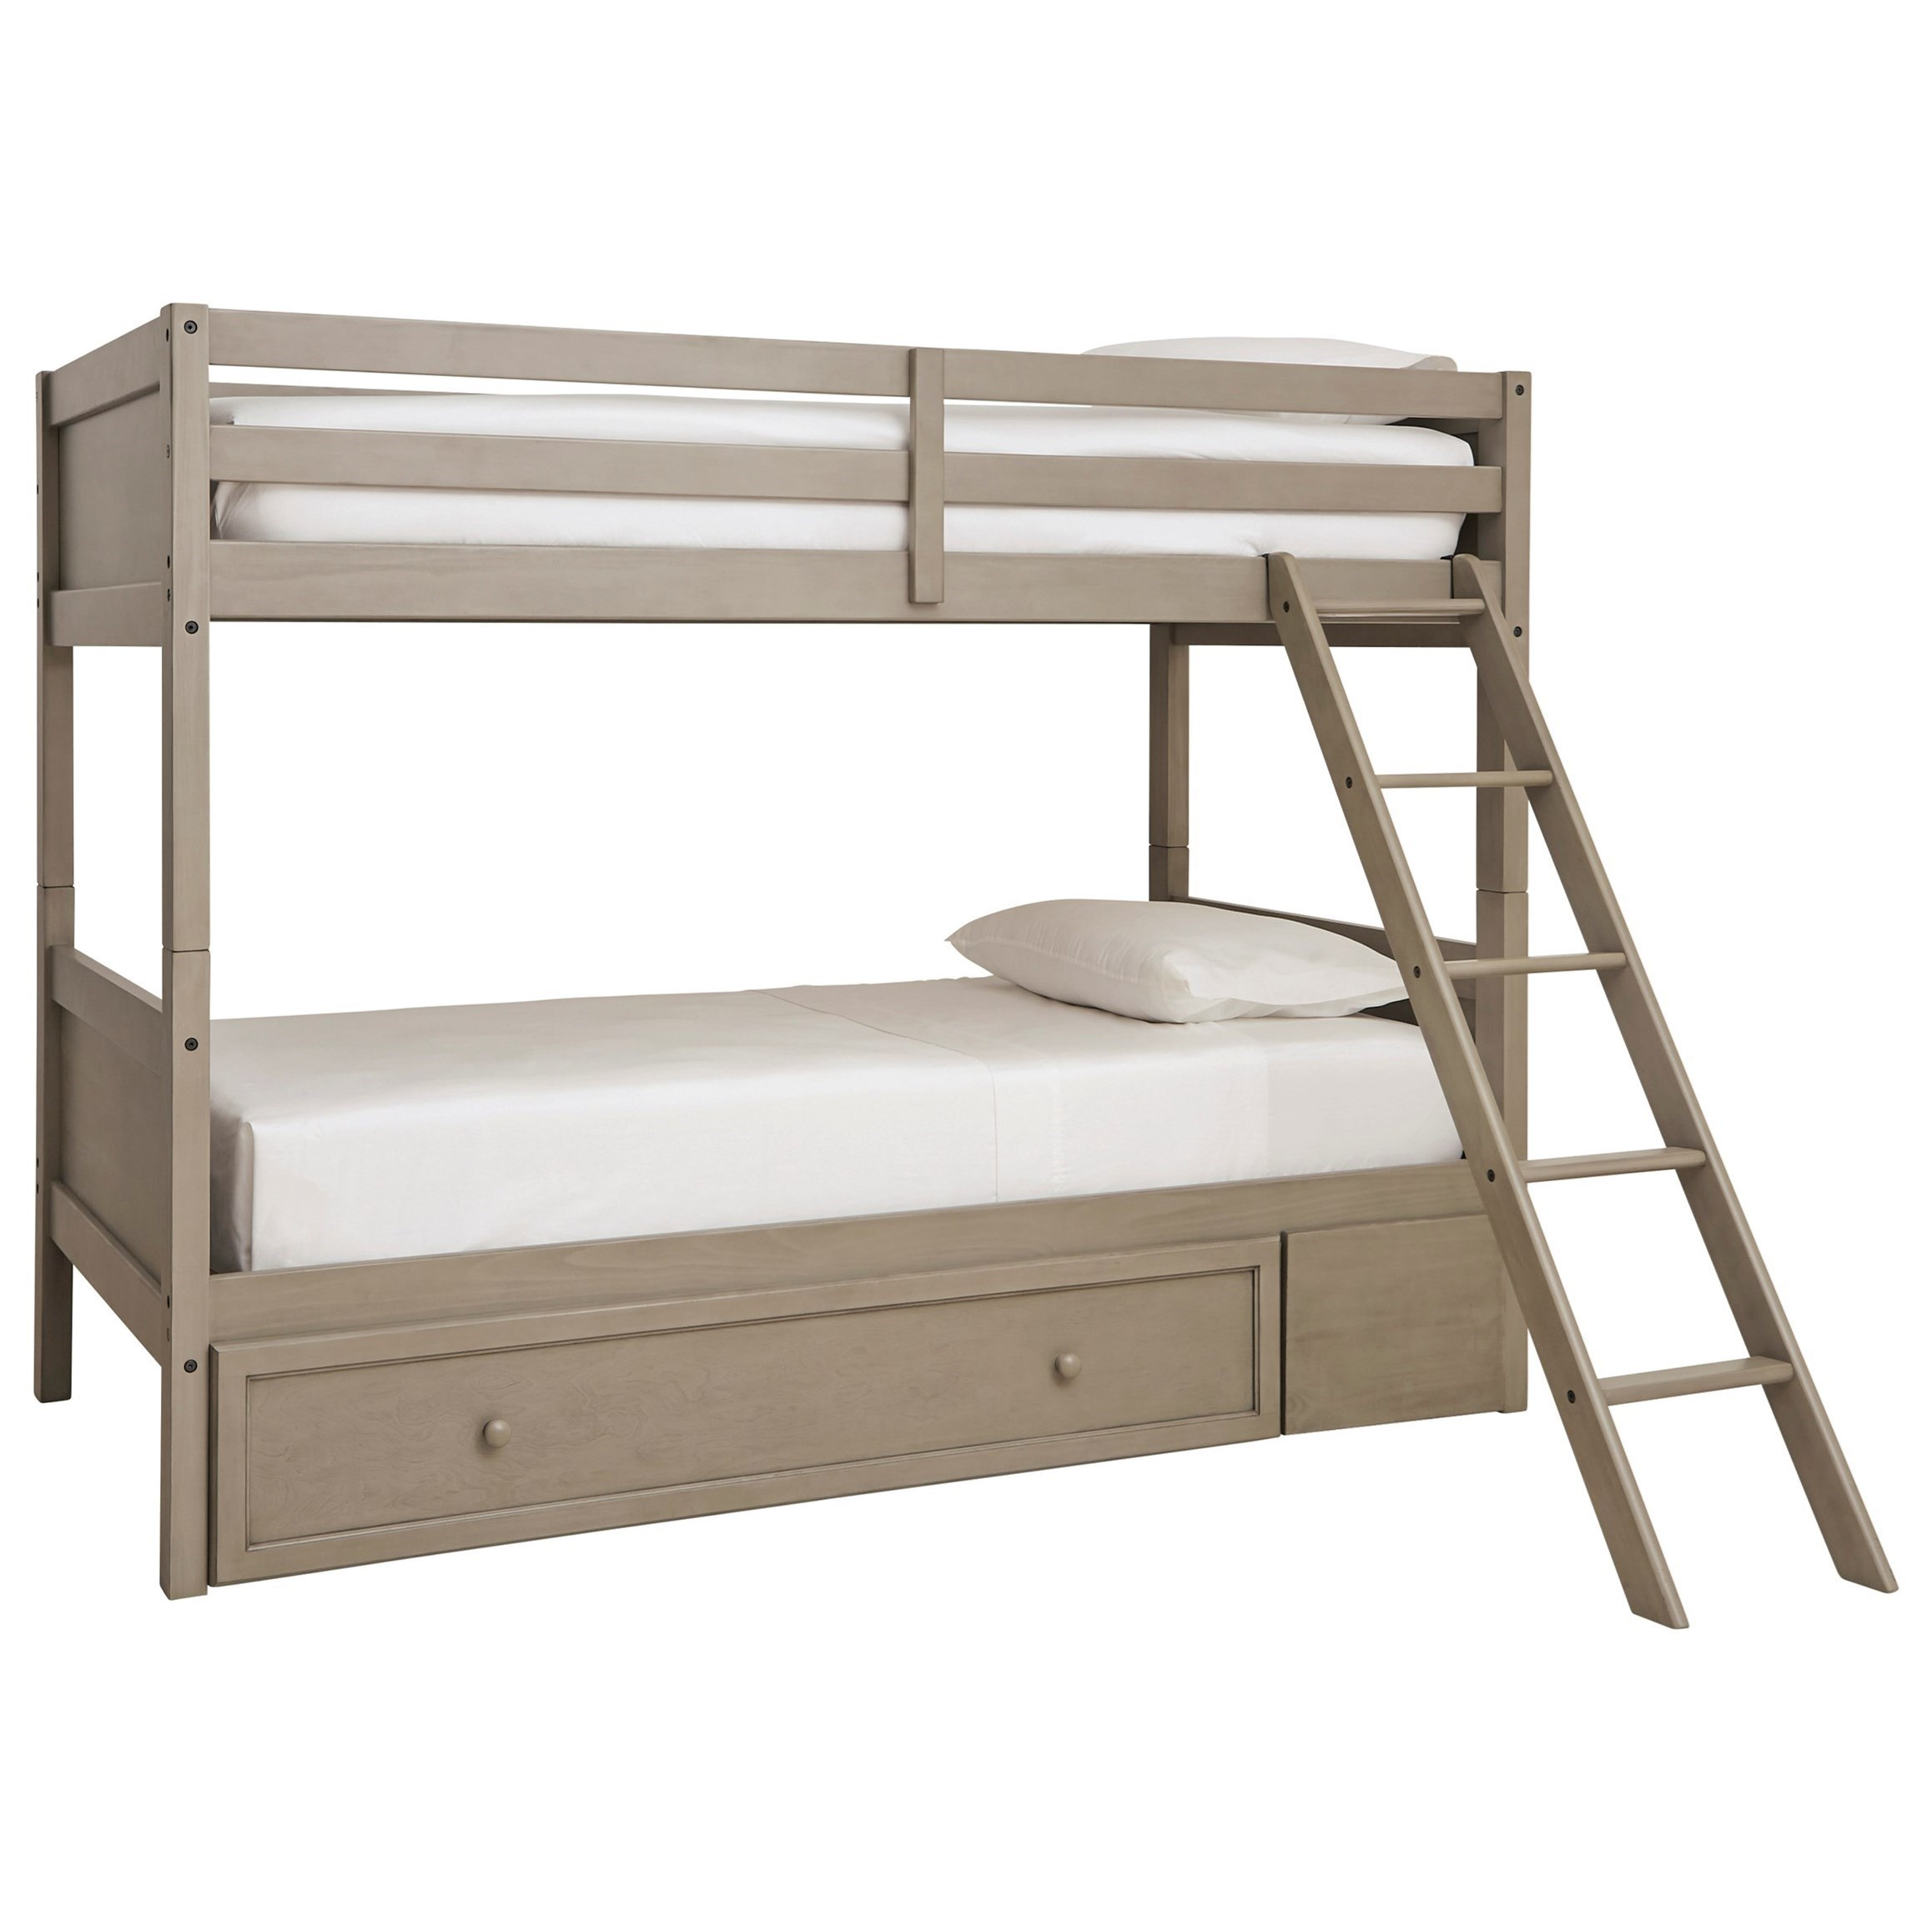 Signature Design By Ashley Lettner Twin Twin Bunk Bed W Ladder Under Bed Storage Conlin S Furniture Bunk Beds